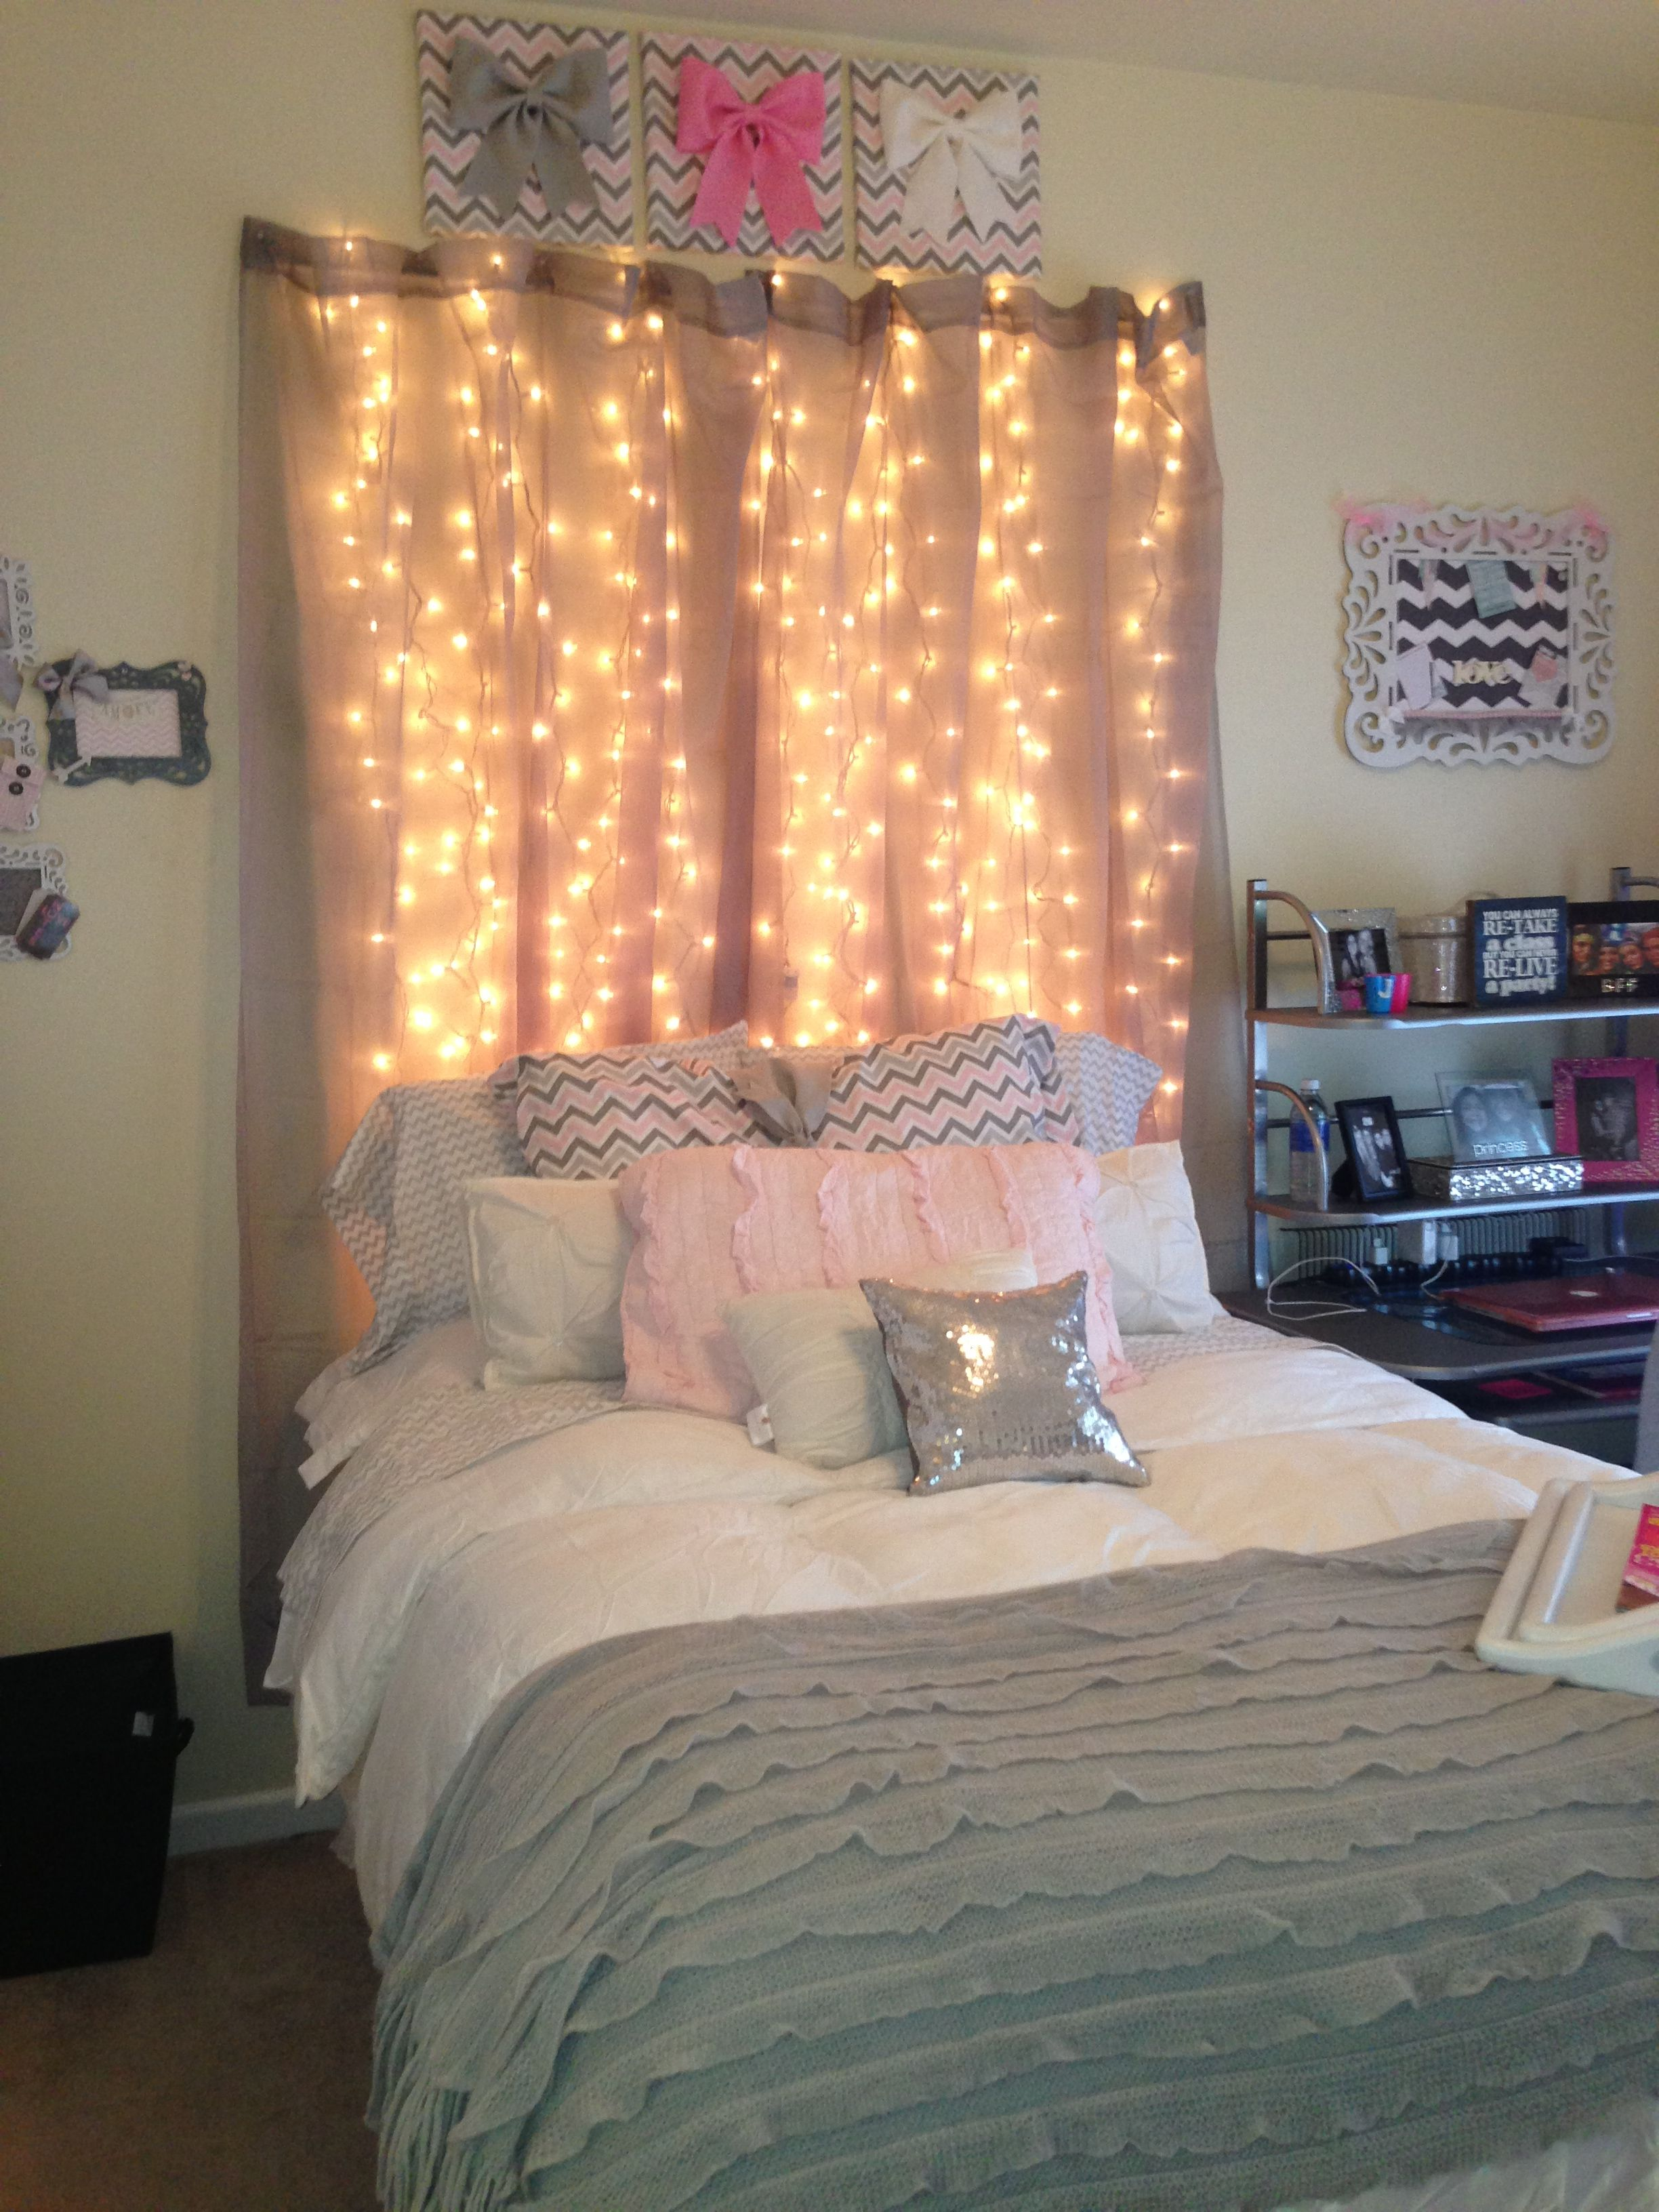 Love The Way Lights Hang Over Bed This Is Literally Sarah S Dorm So Cly And Perfect Princess Yet At Same Time